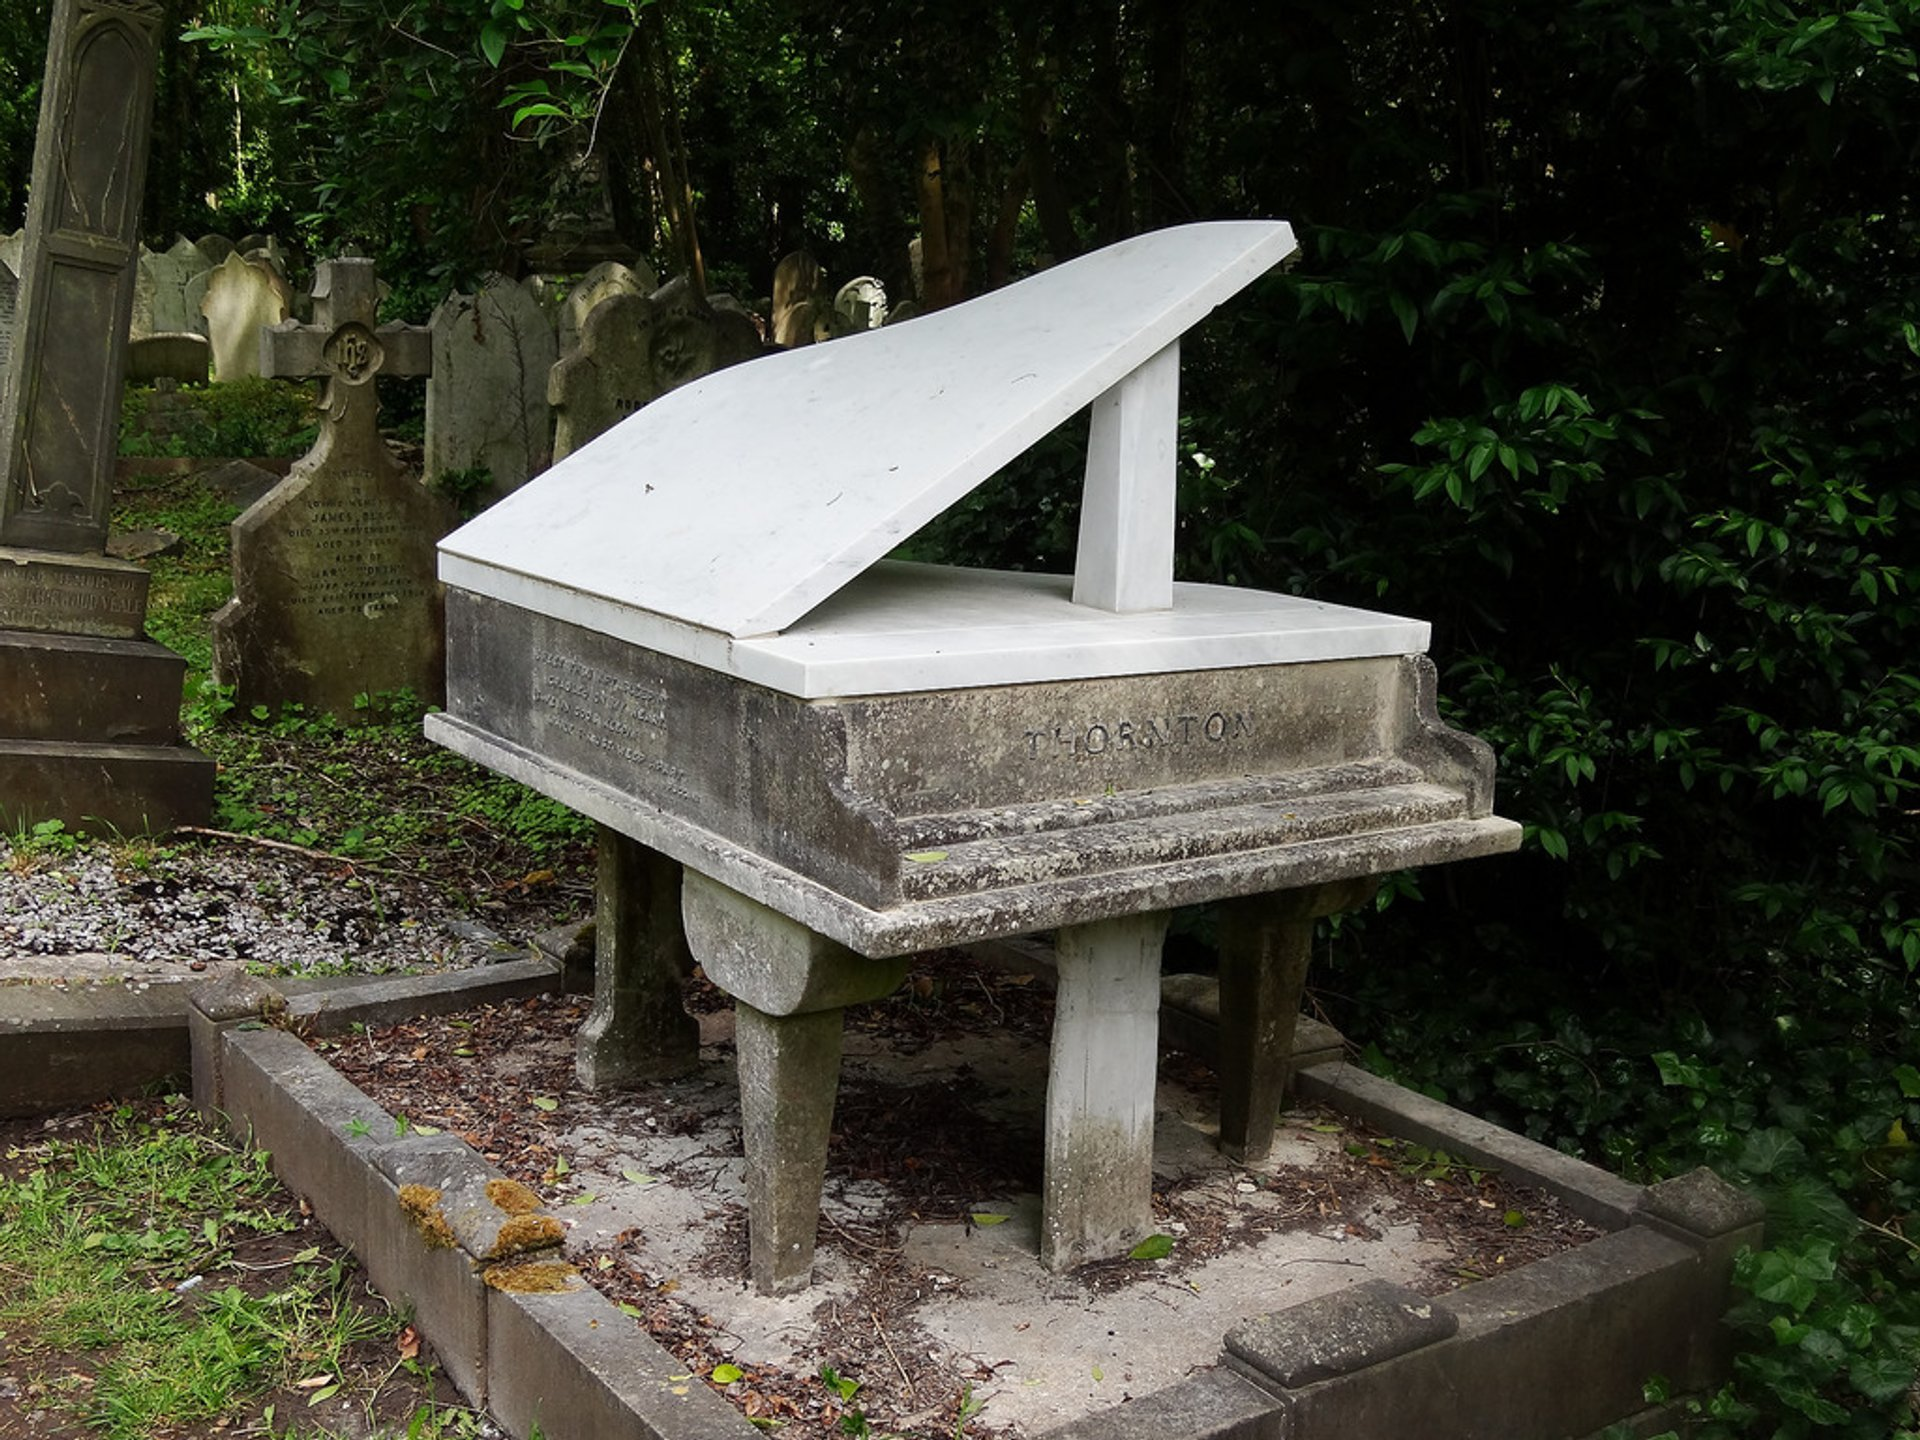 Best time to see Highgate Cemetery in London 2020